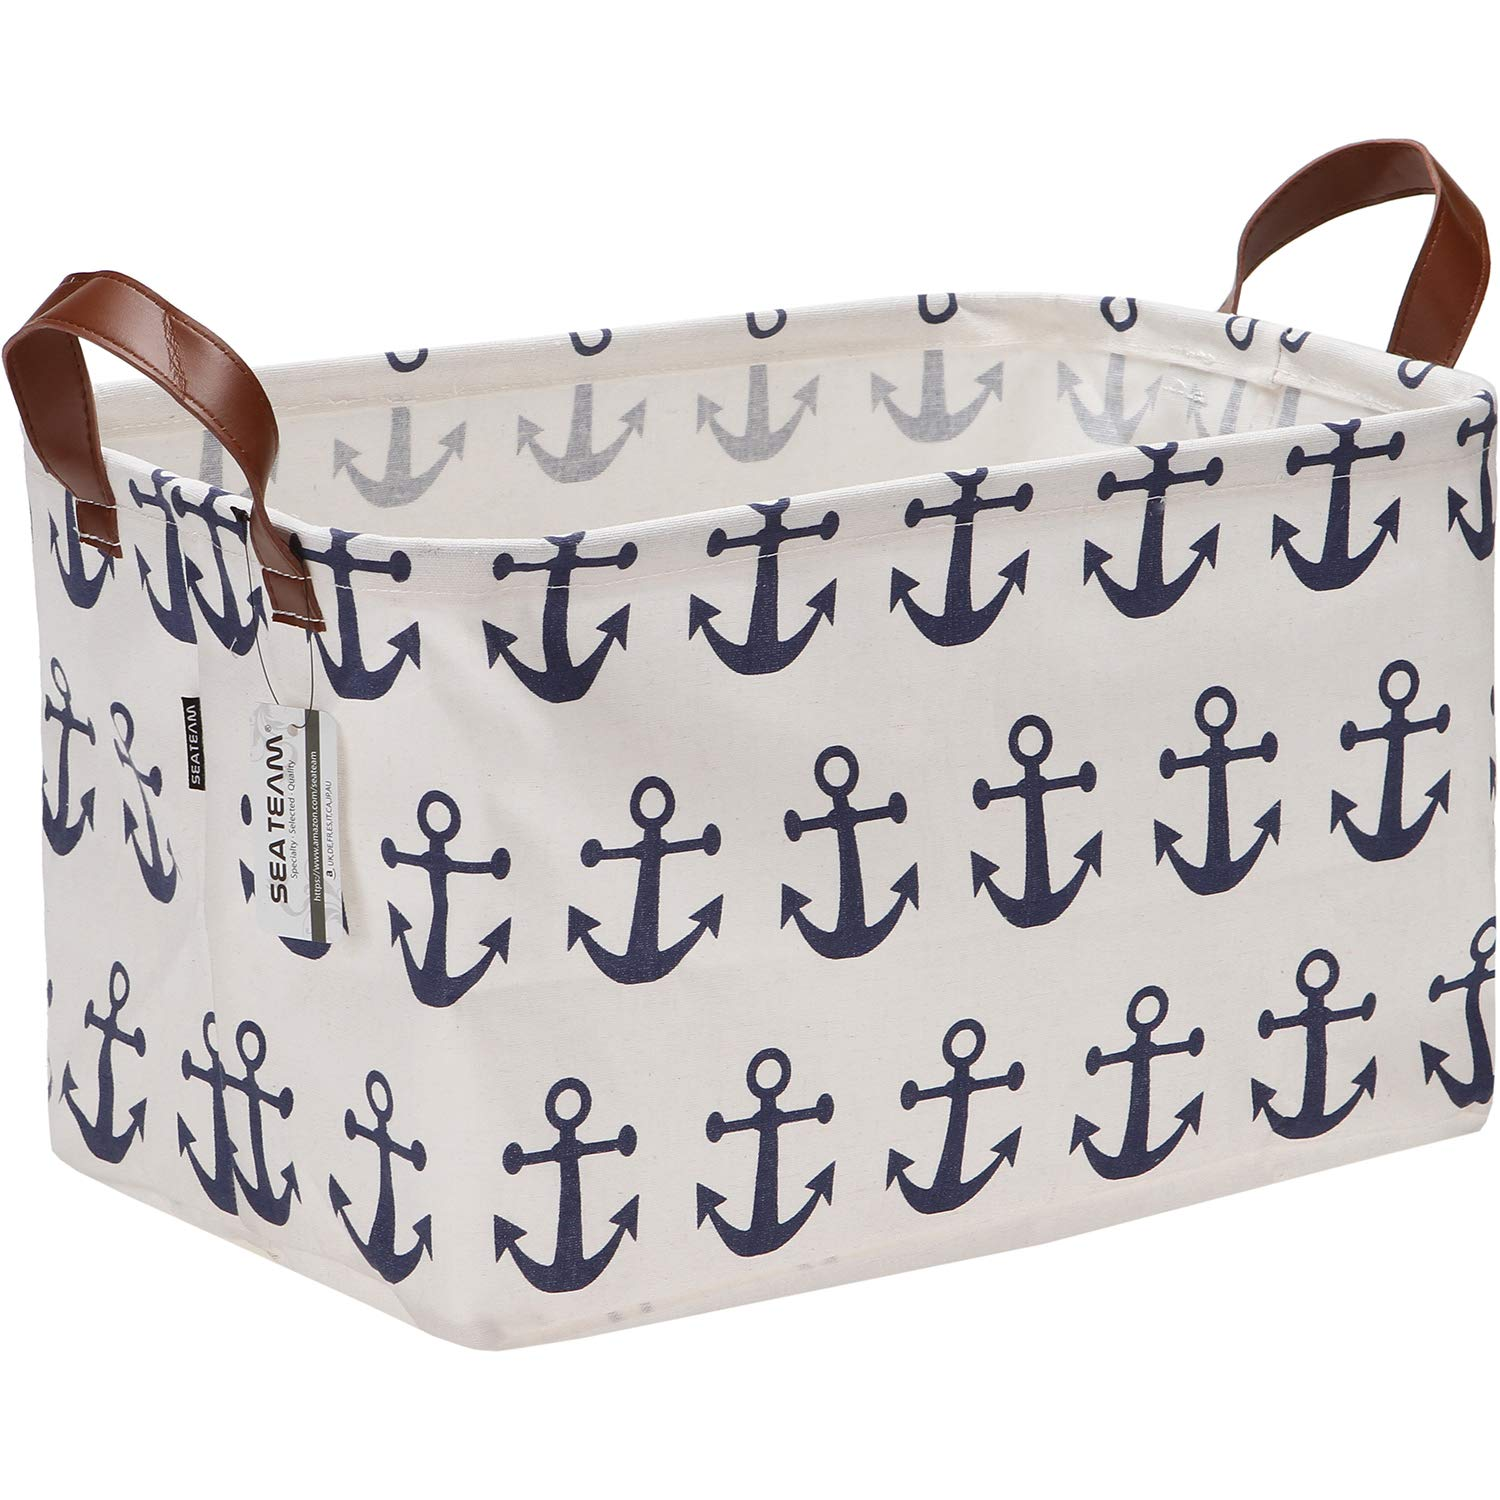 Sea Team Large Size Canvas Storage Bin Collapsible Shelf Basket Toy Organizer with Nautical Anchor Pattern, 16.5 by 11.8 inches, Navy Blue